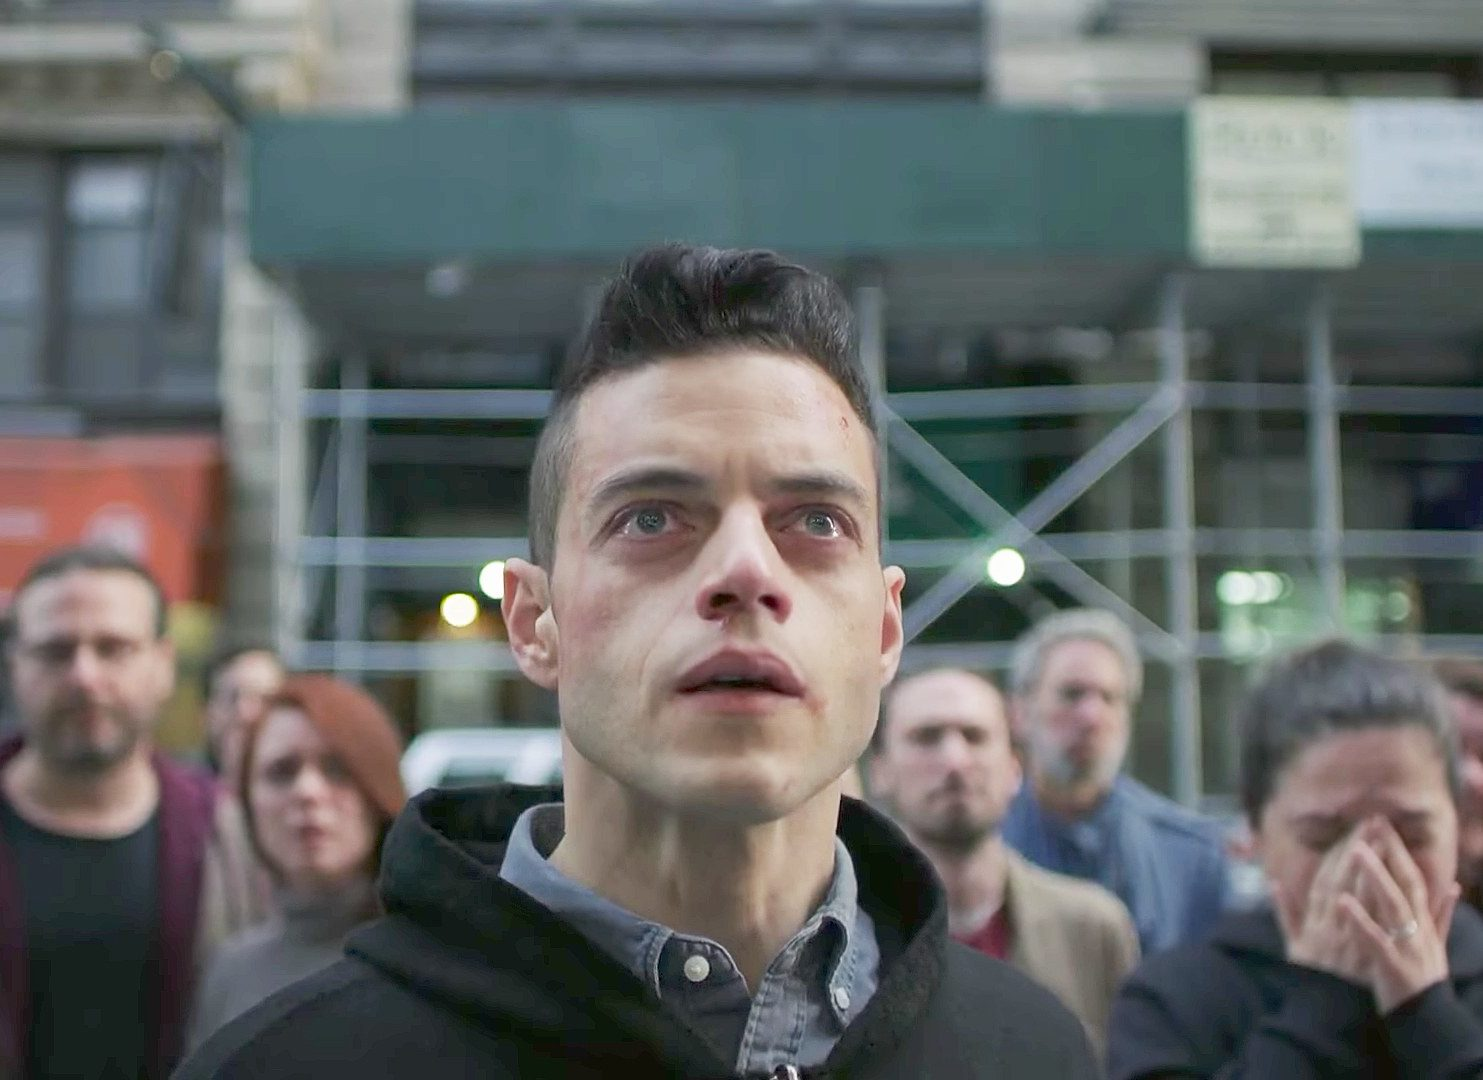 mr robot usa network season 4 final season